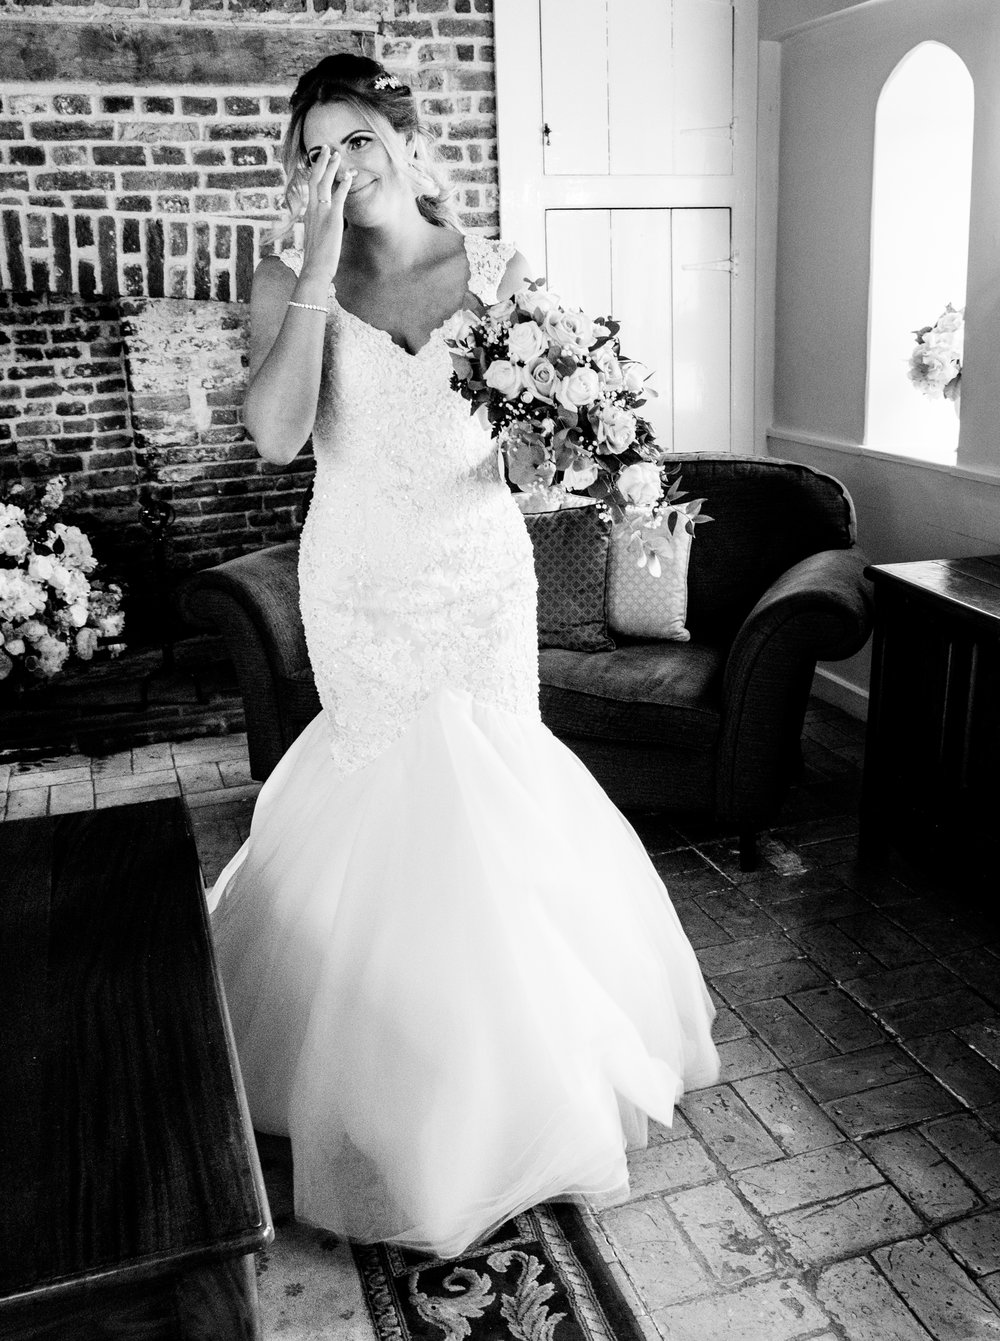 Leez Priory wedding photography, Essex wedding photographer